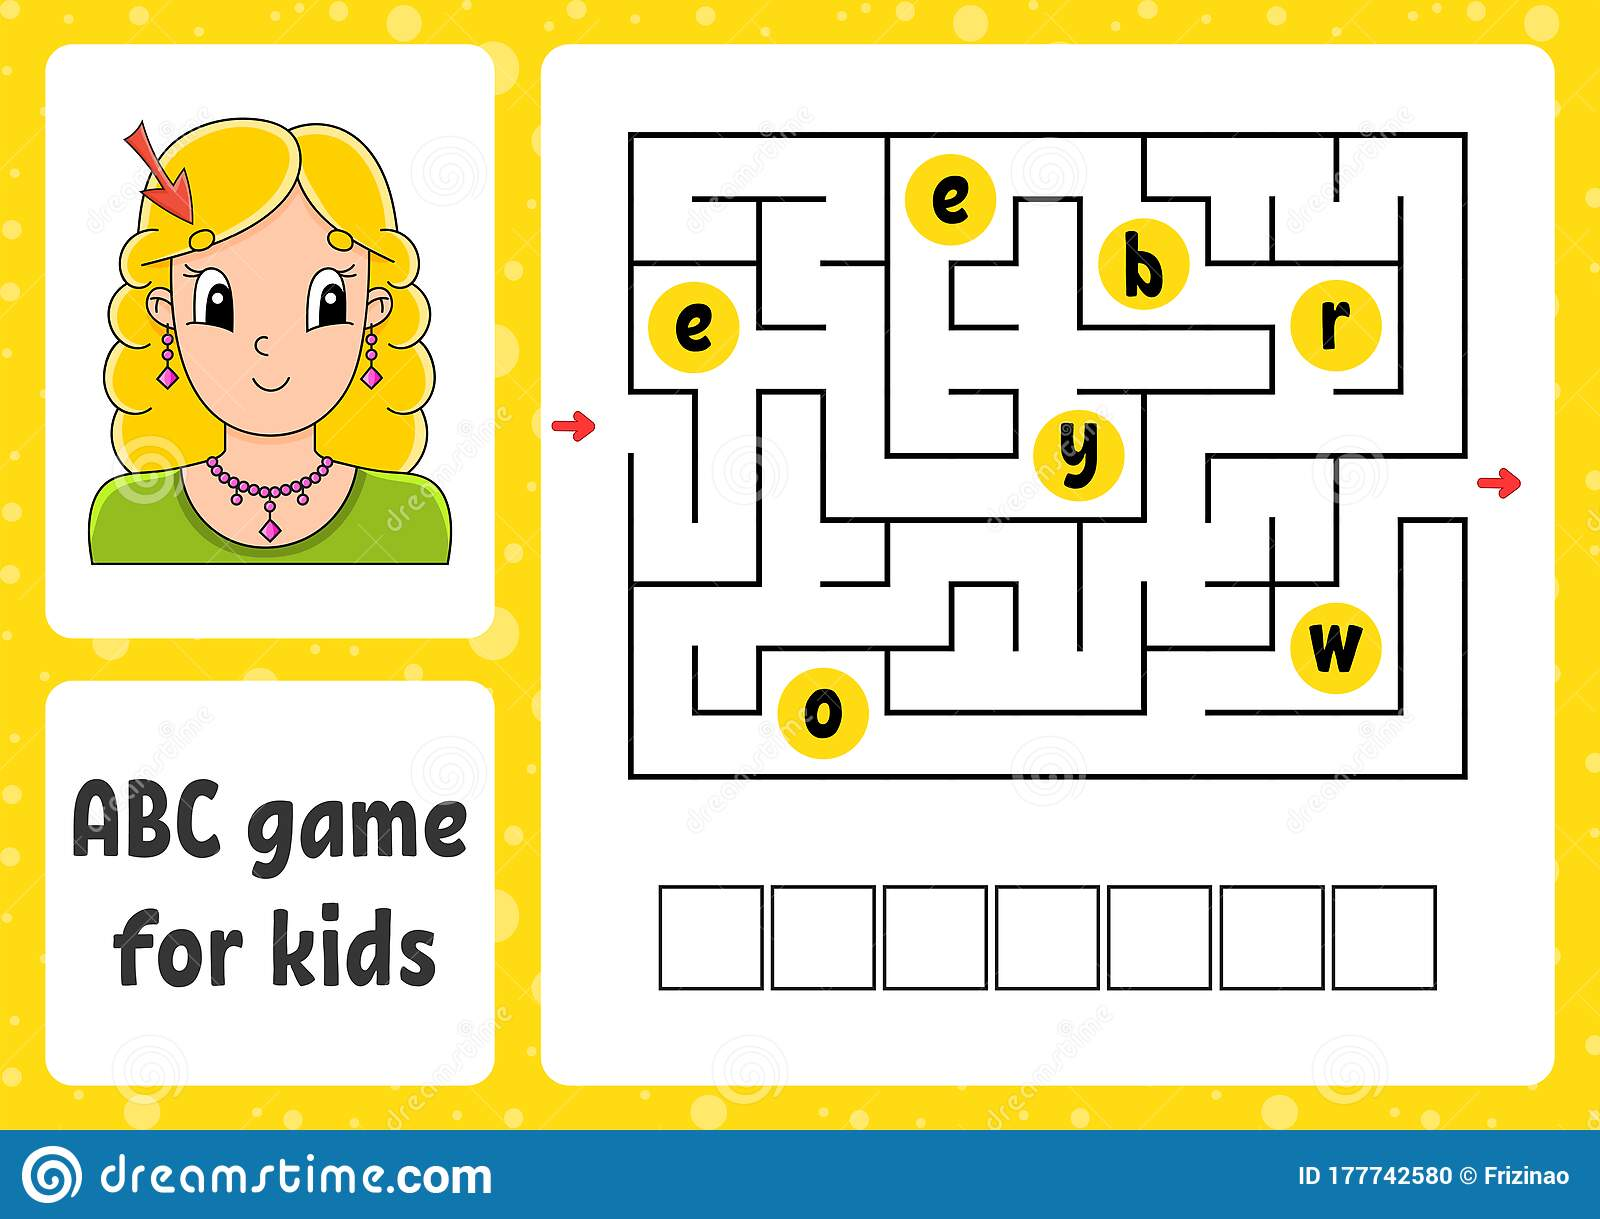 Abc Maze For Kids Answer Eyebrow Rectangle Labyrinth